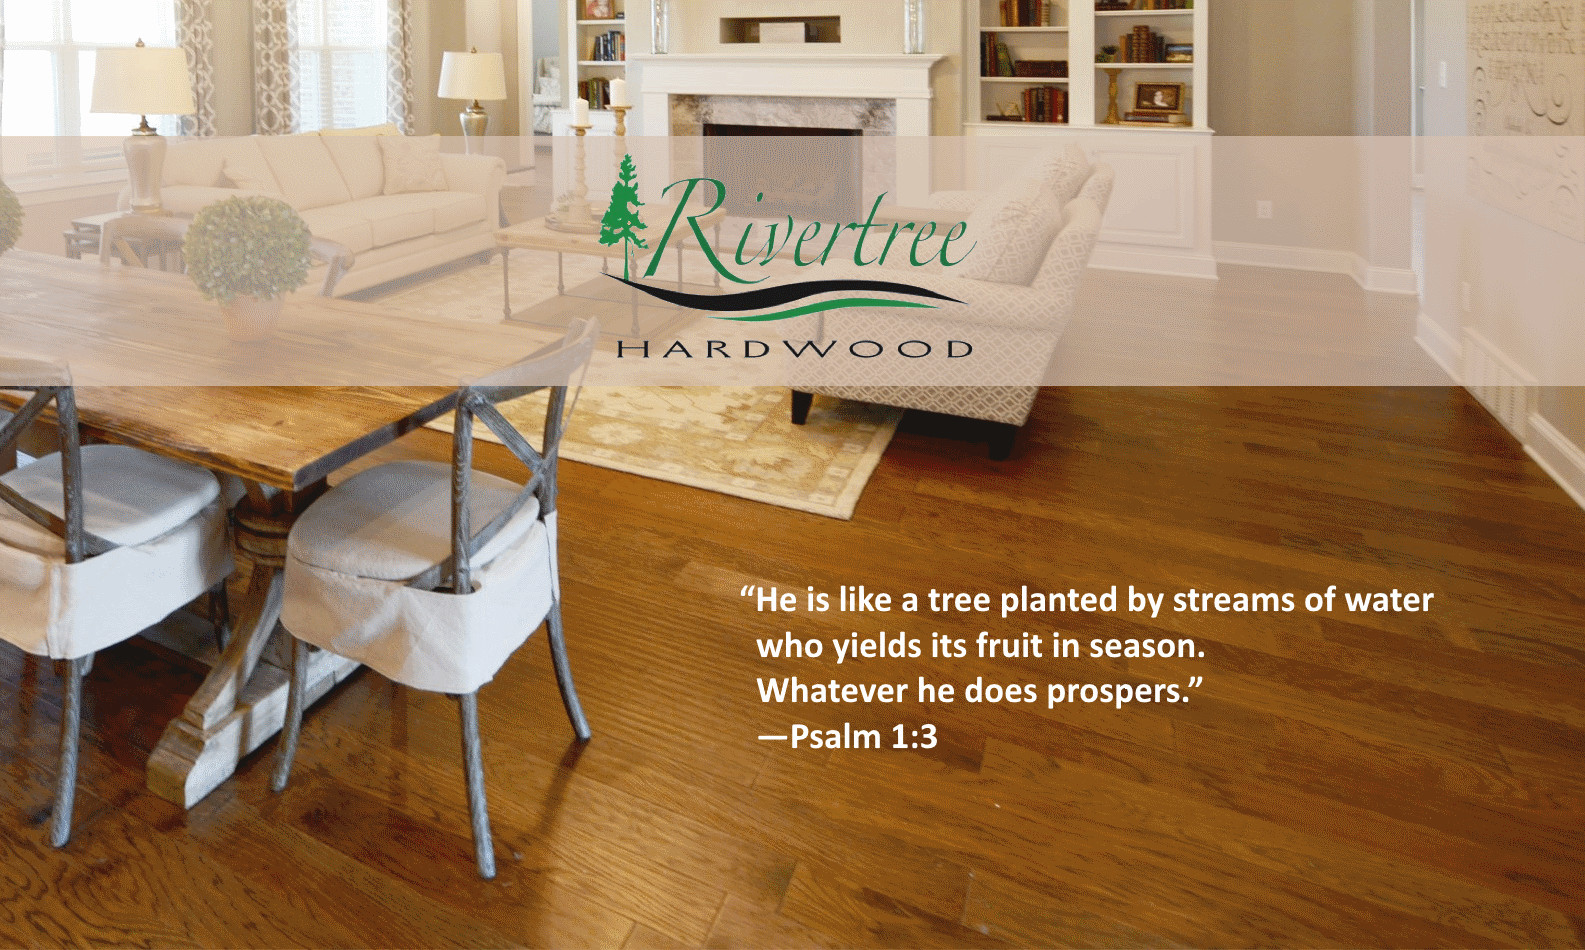 hand scraped hardwood flooring of rivertree hardwood inc throughout sliderpix1